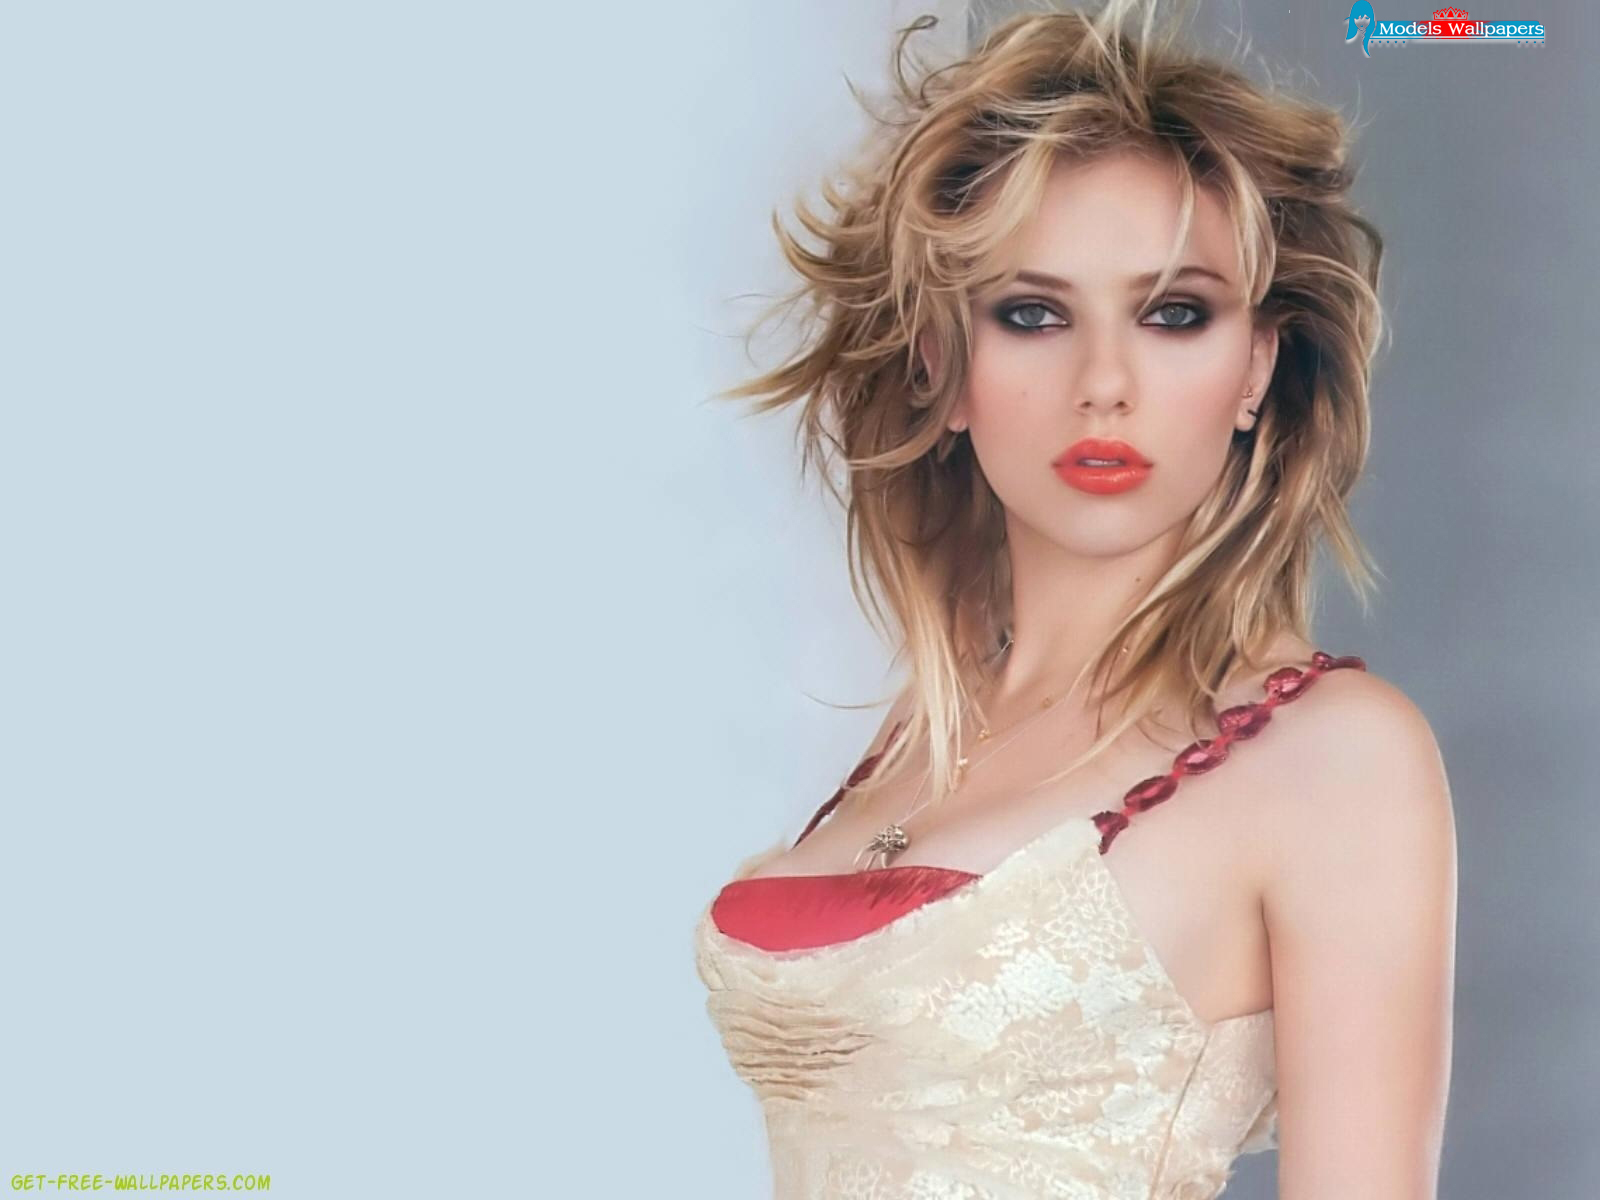 scarlett johansson model - photo #2